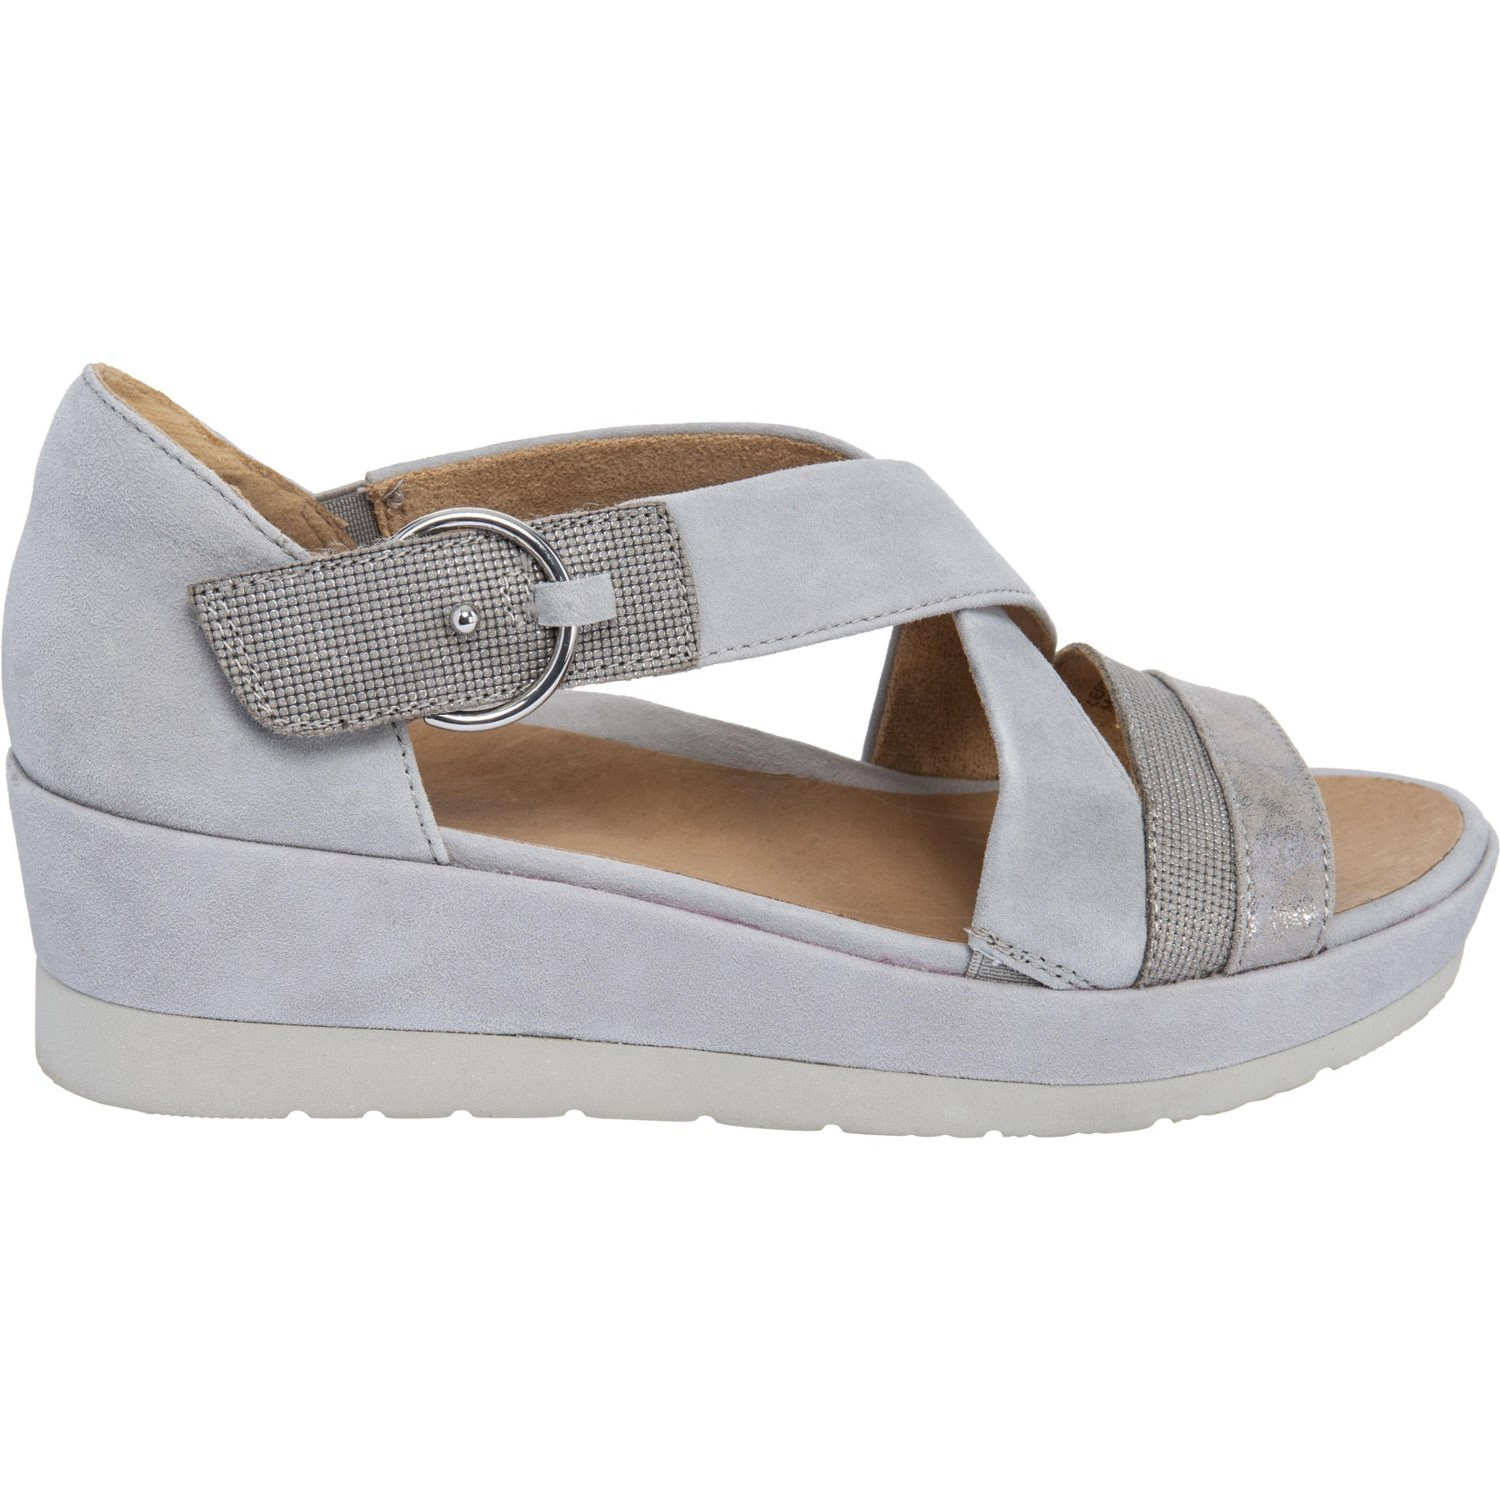 dbc4112901 Earth Hibiscus X-Strap Sandals (For Women) - Save 46%